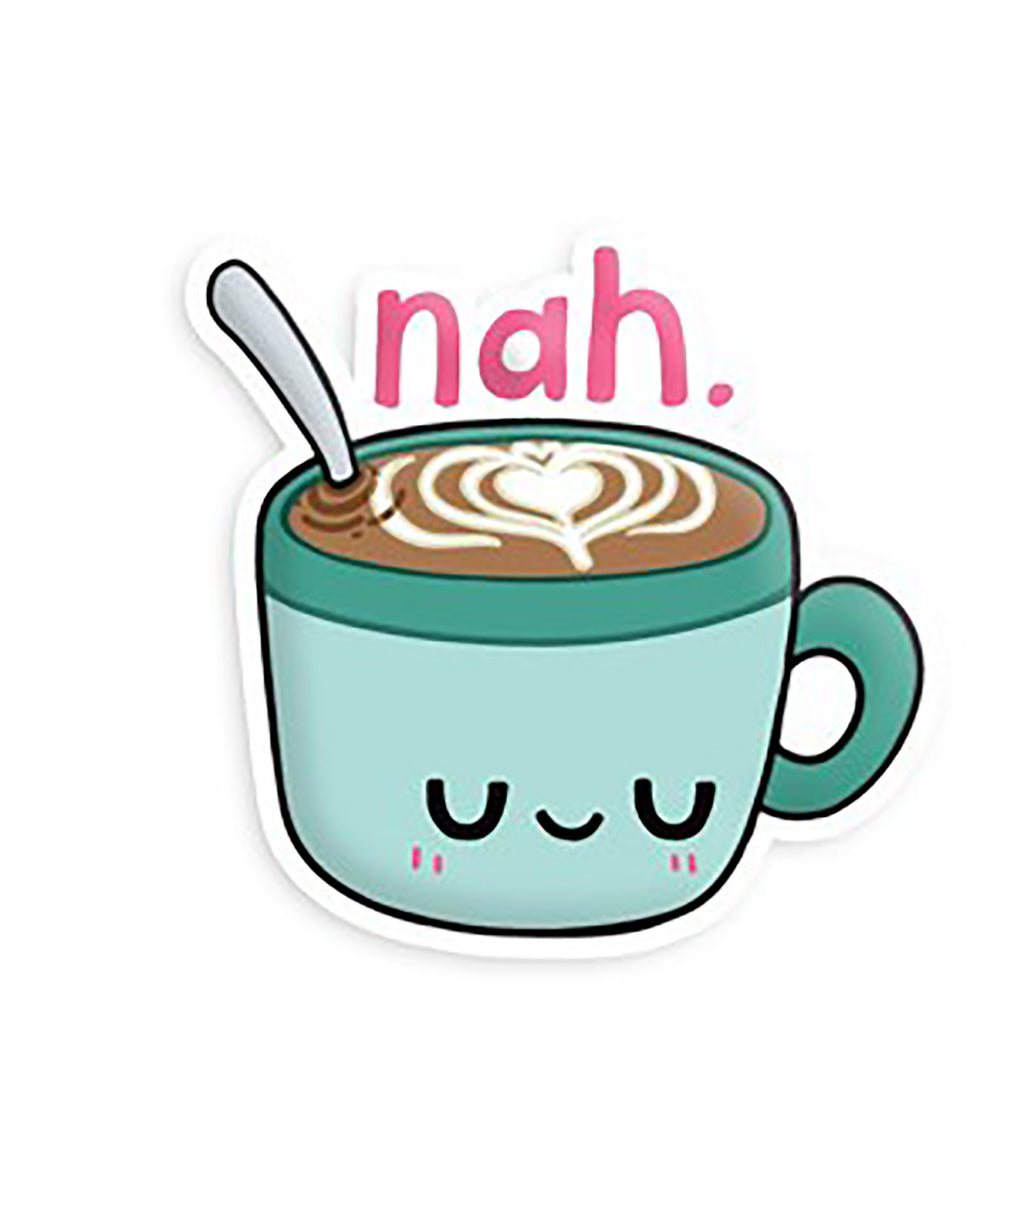 Squishable Vinyl Sticker Nah Hot Chocolate